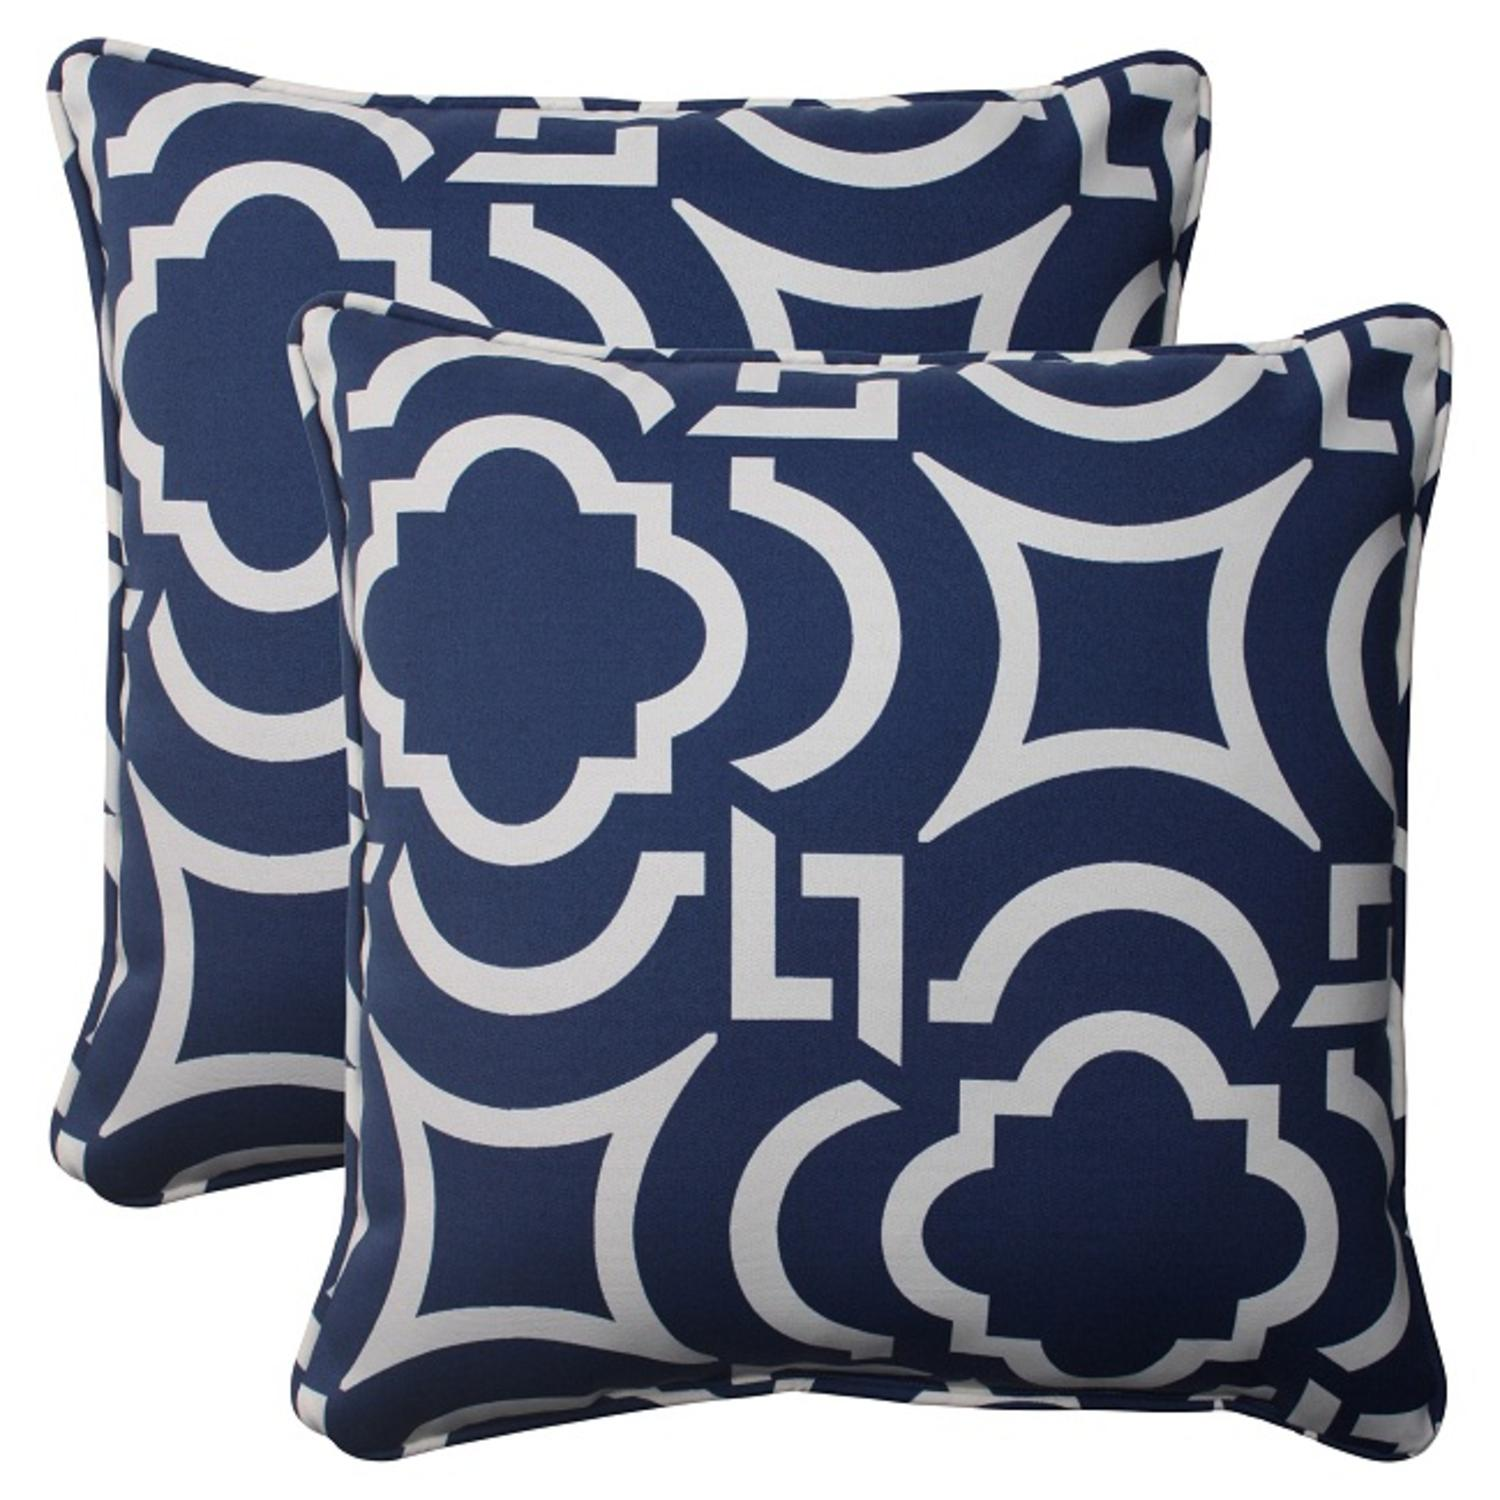 Set of 2 Geometric Navy Blue Sky Outdoor Patio Square Throw Pillows 18.5""